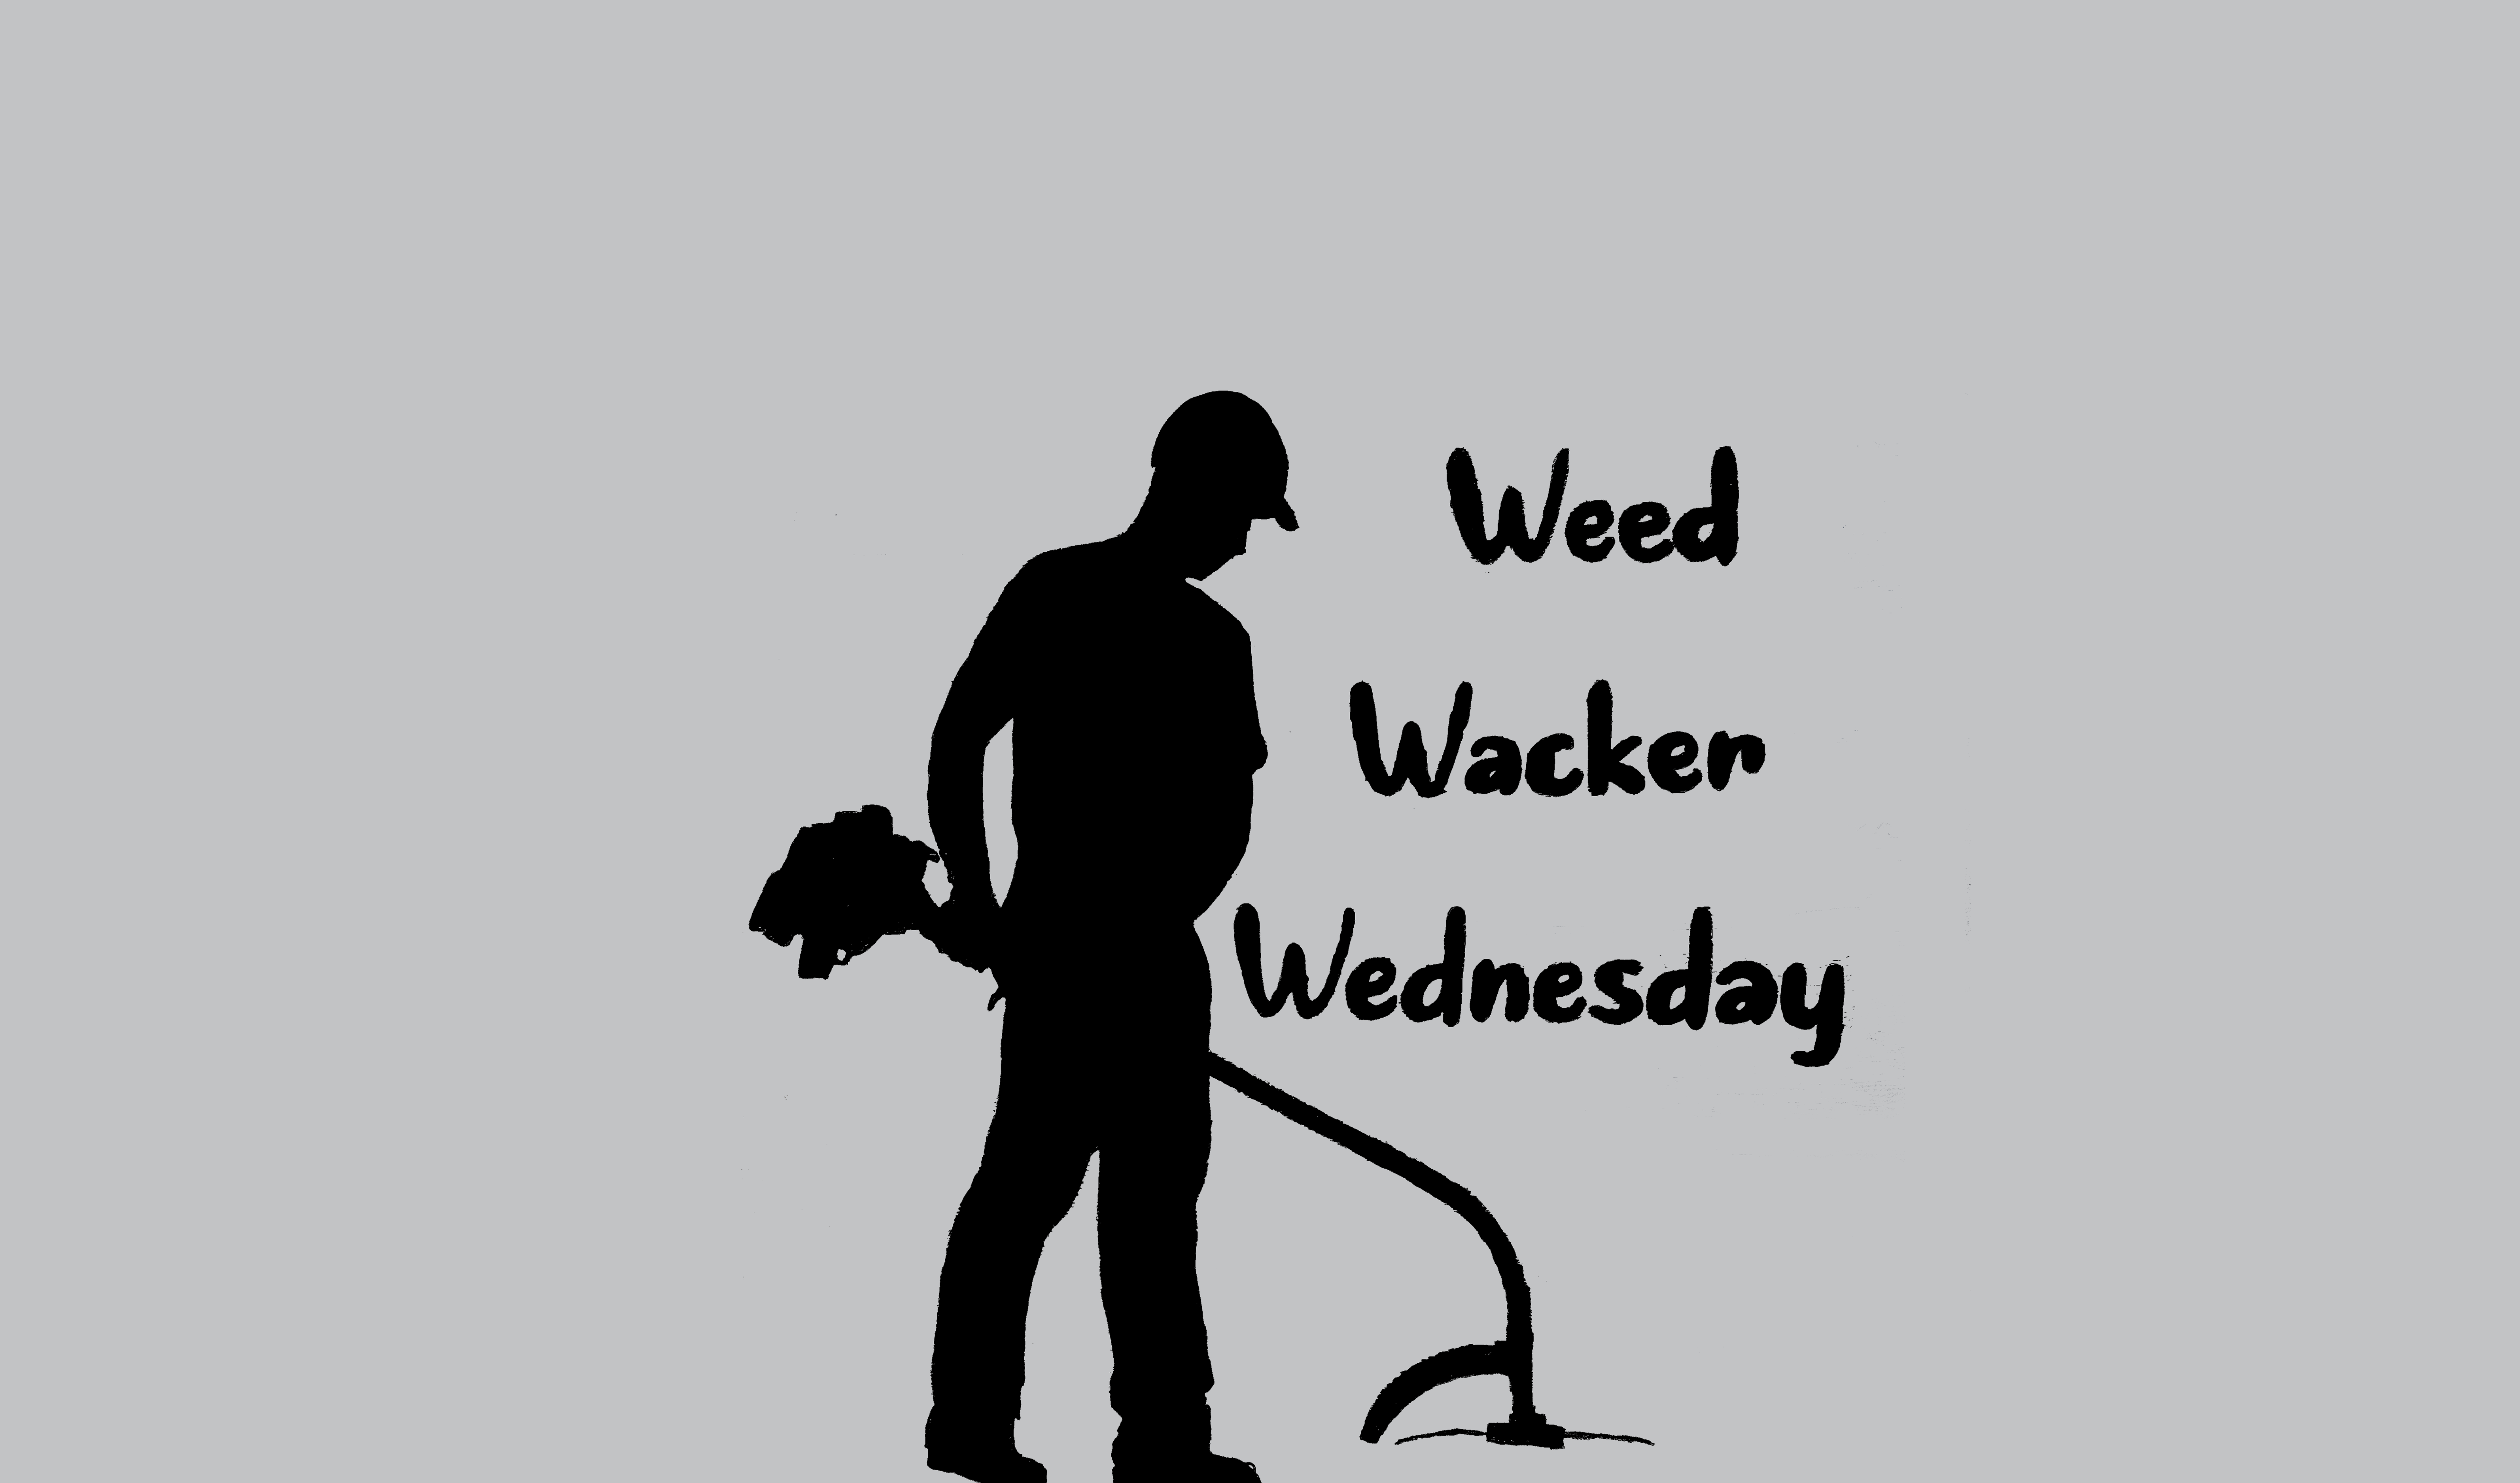 Weed Wacker Wednesday